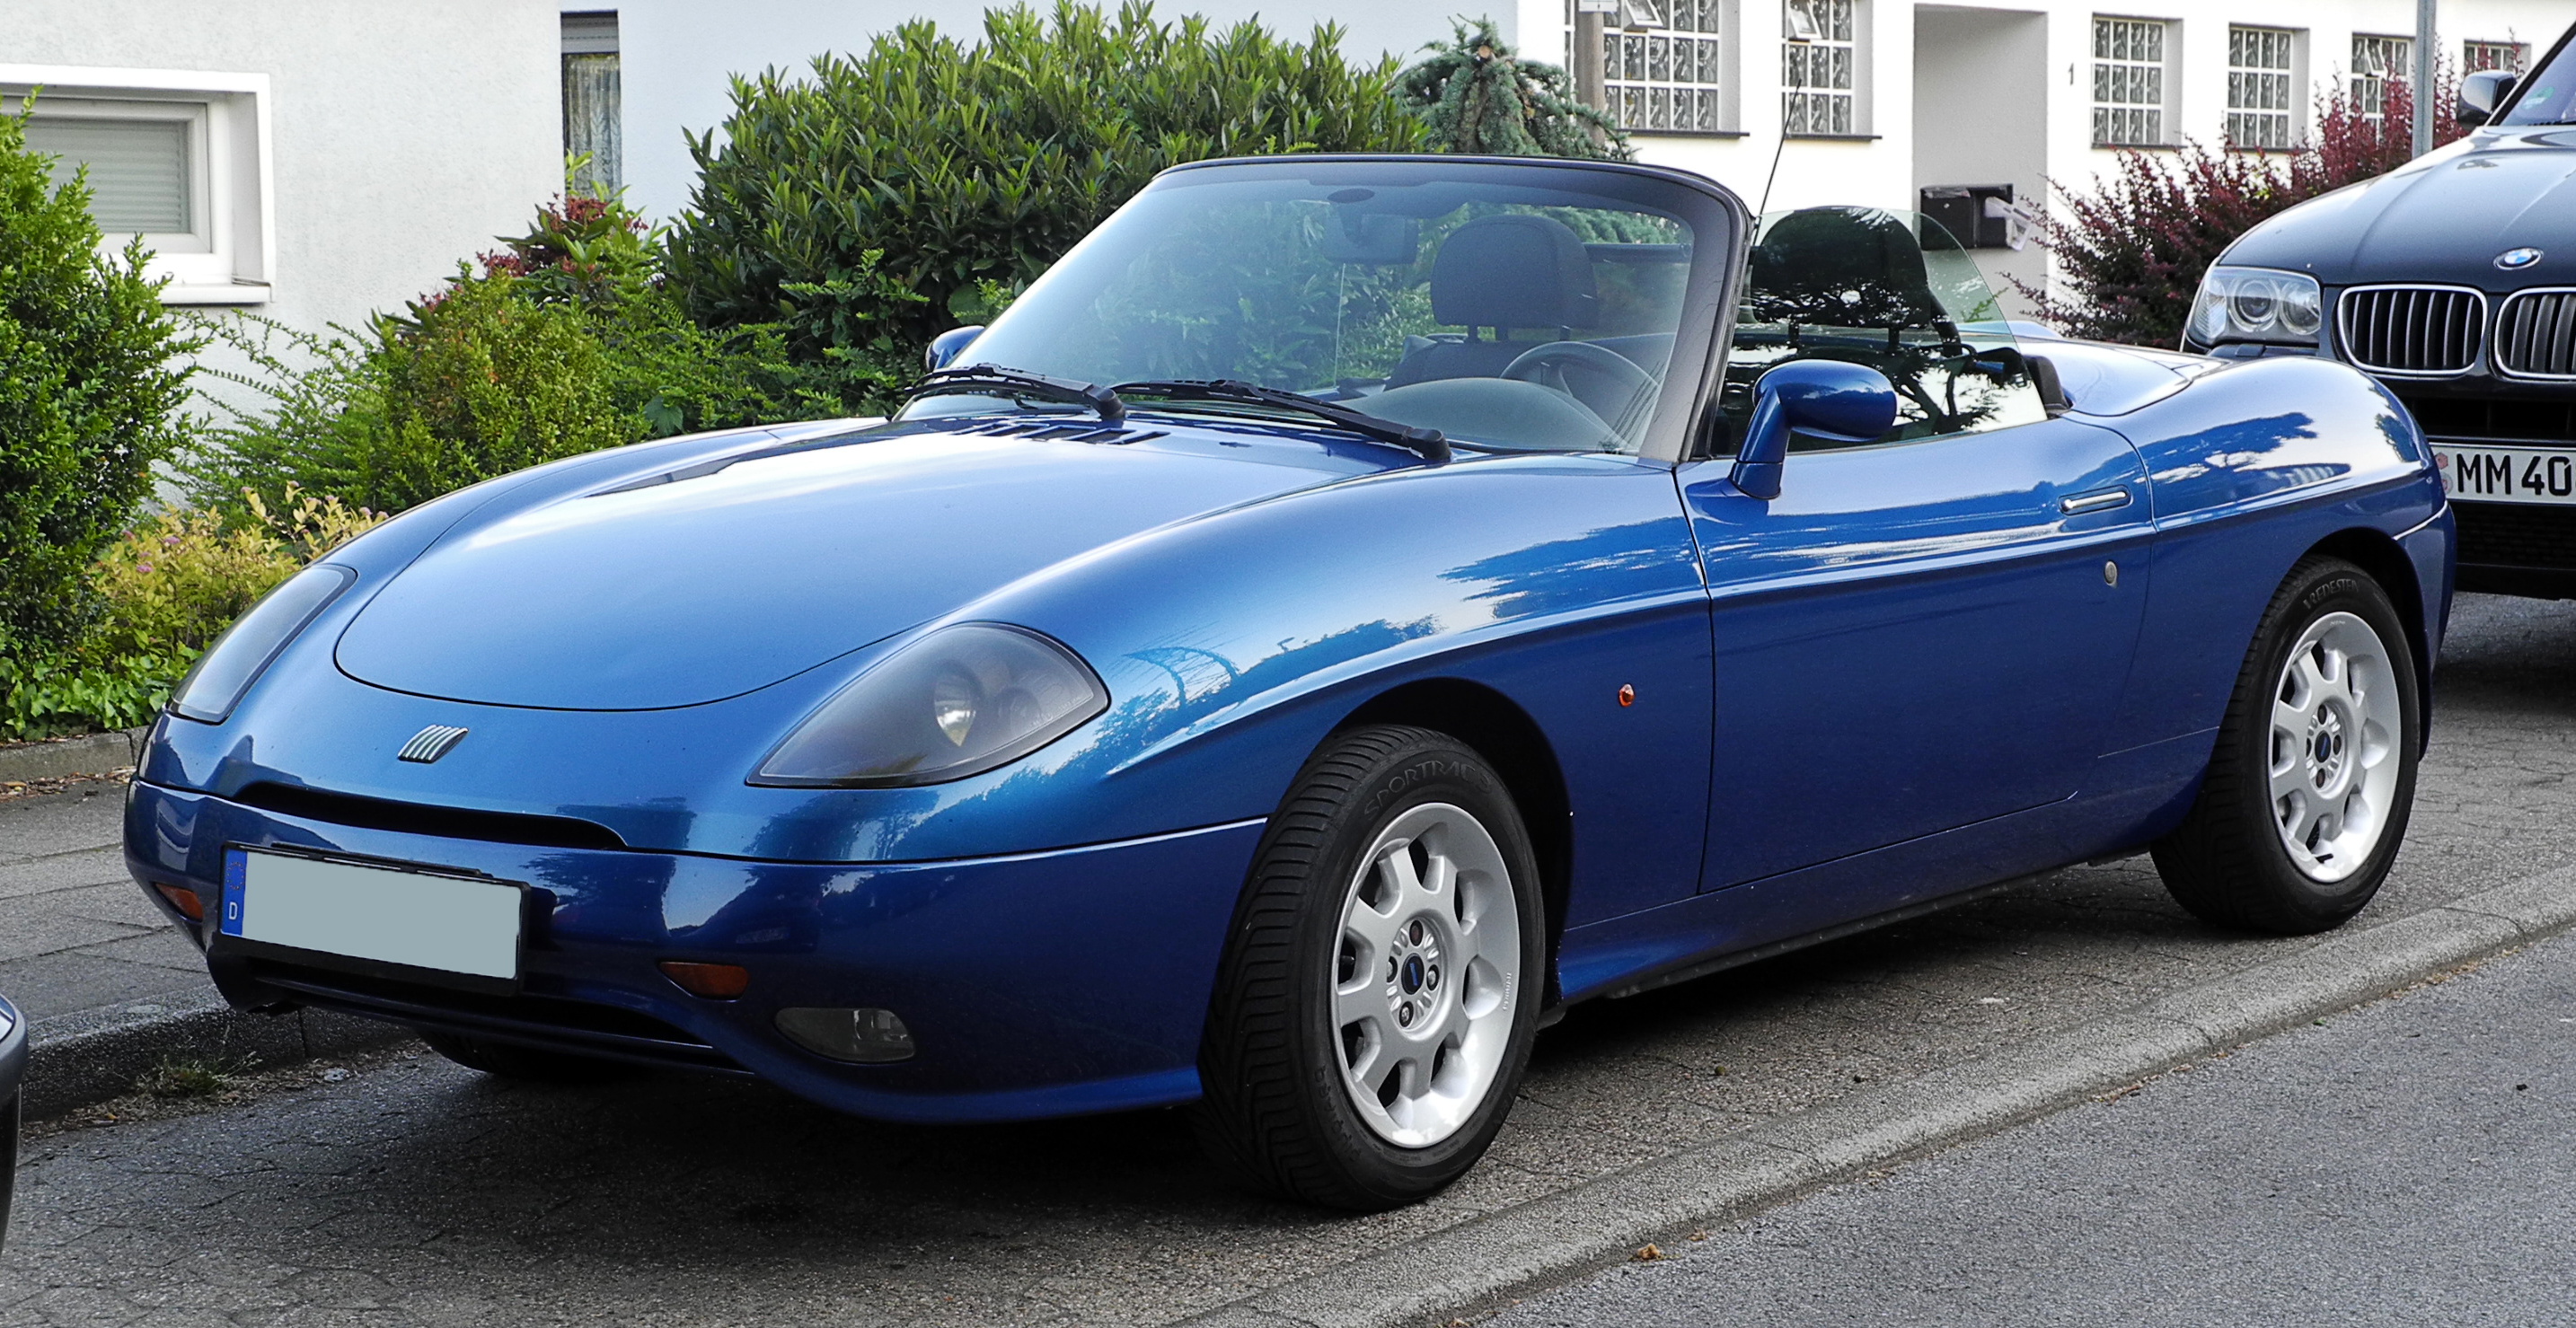 Fiat Barchetta ultima spider